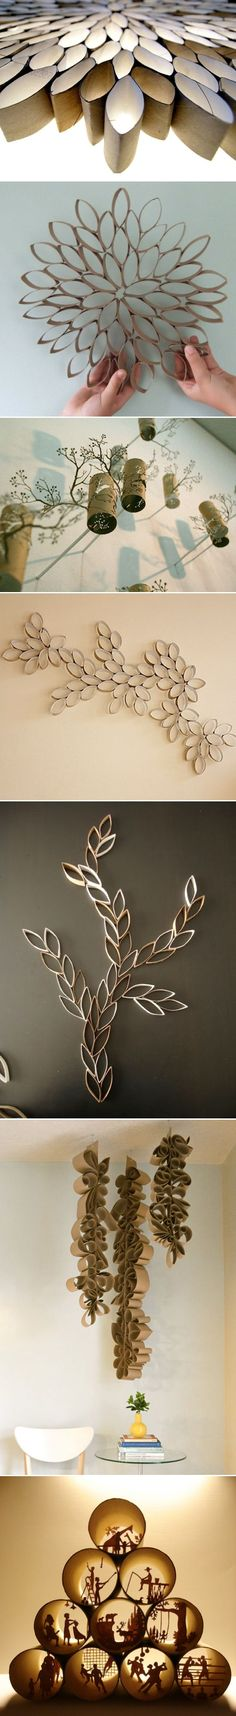 Toilet Paper Roll Crafts-